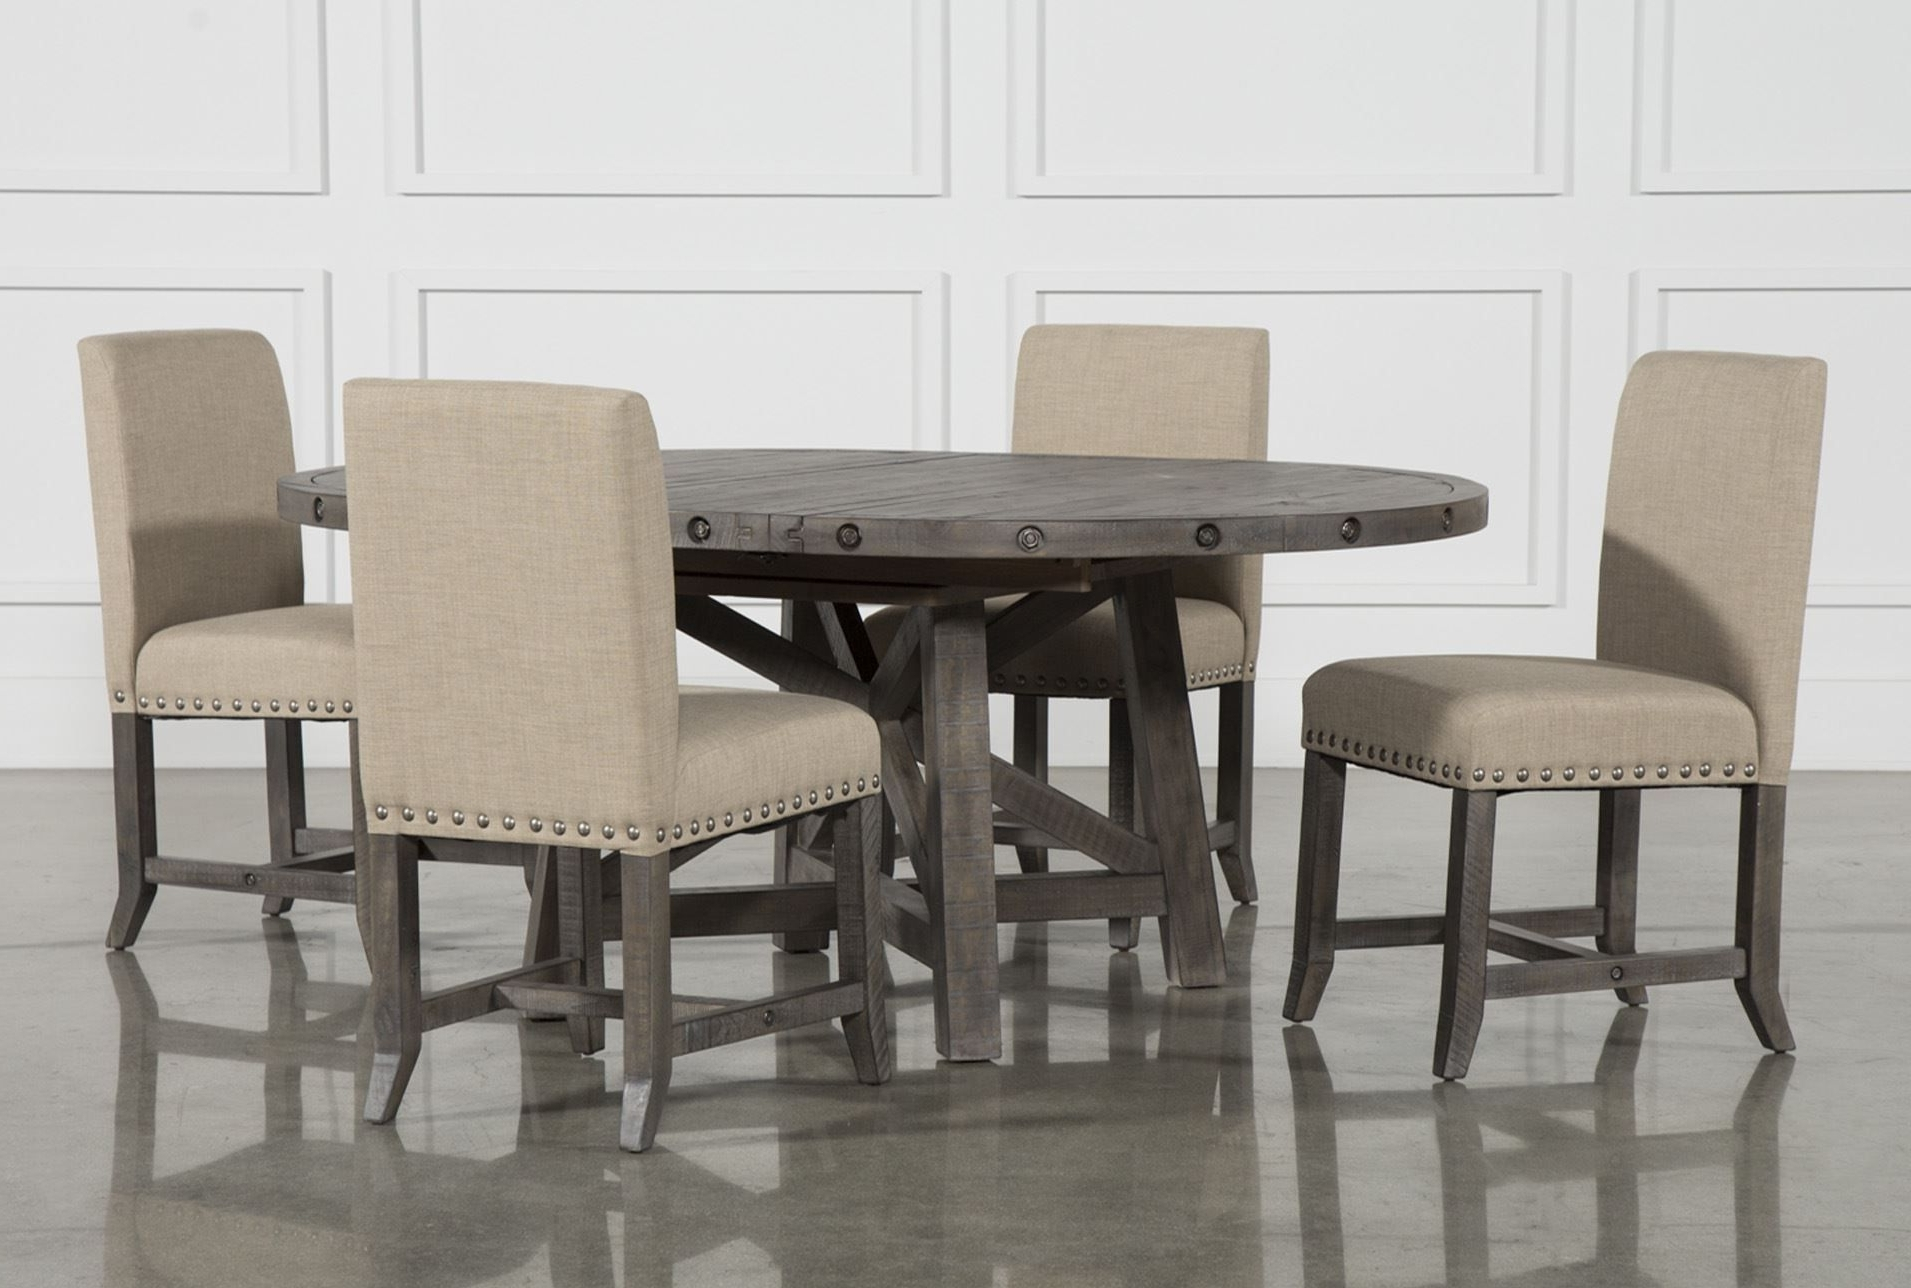 Most Recent Palazzo 7 Piece Dining Sets With Mindy Slipcovered Side Chairs Inside Jaxon Grey 5 Piece Round Extension Dining Set W/upholstered Chairs (View 8 of 25)